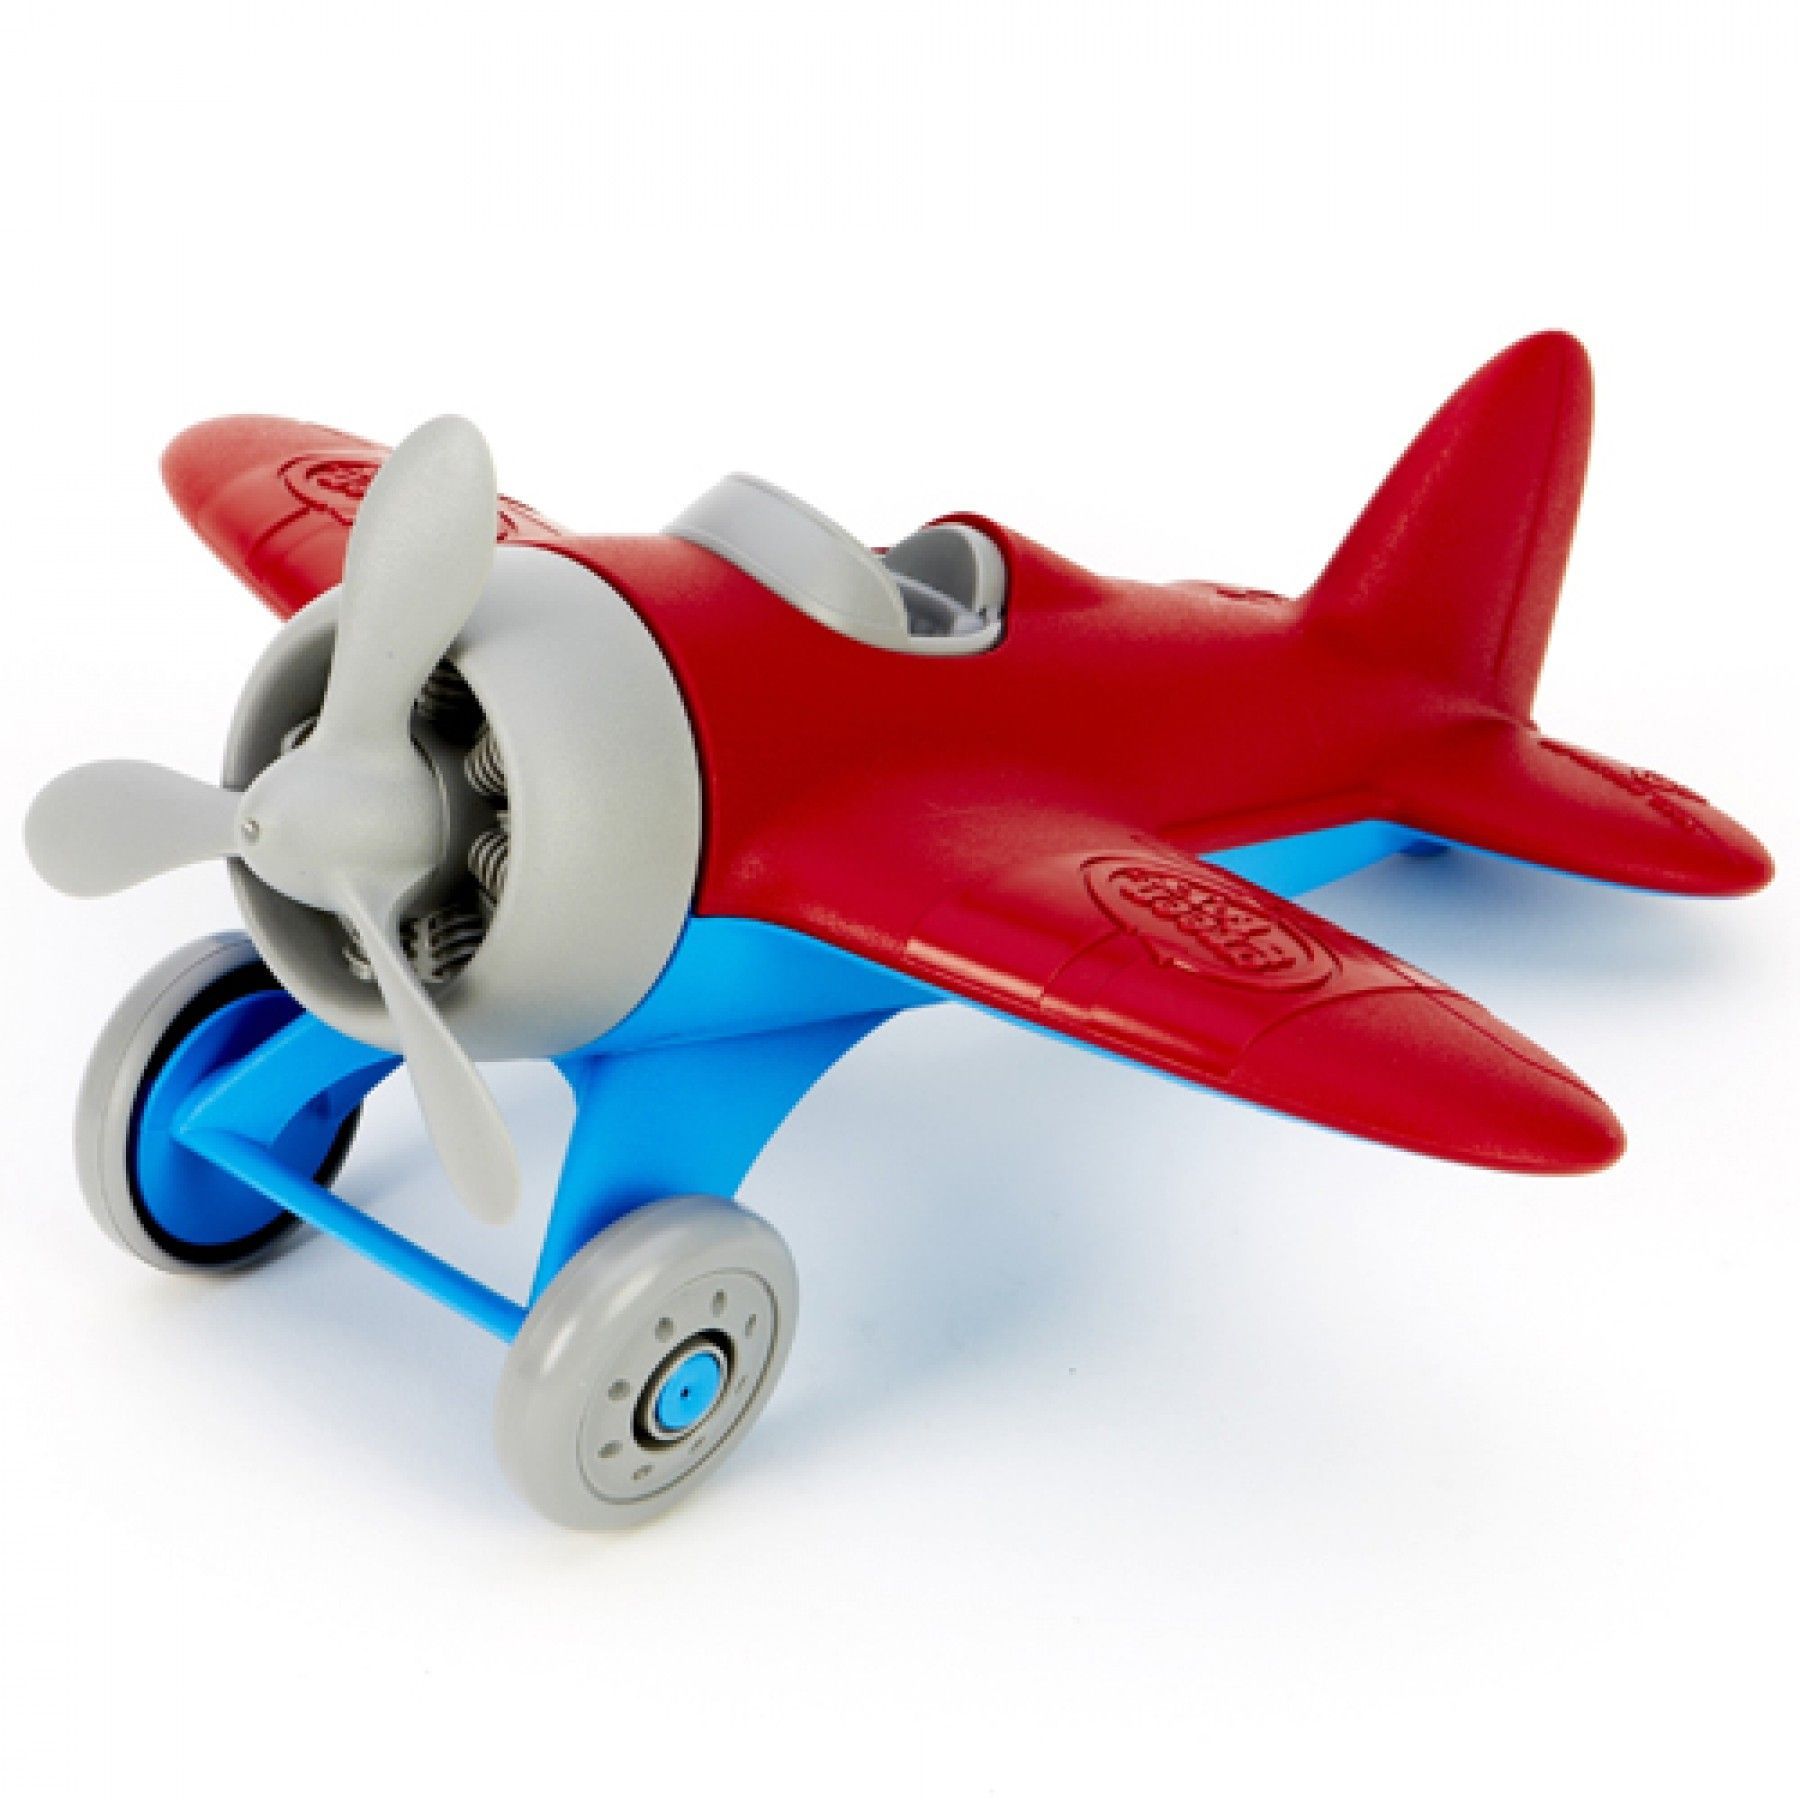 green toys vliegtuig rood - gerecycled | ilovespeelgoed.nl